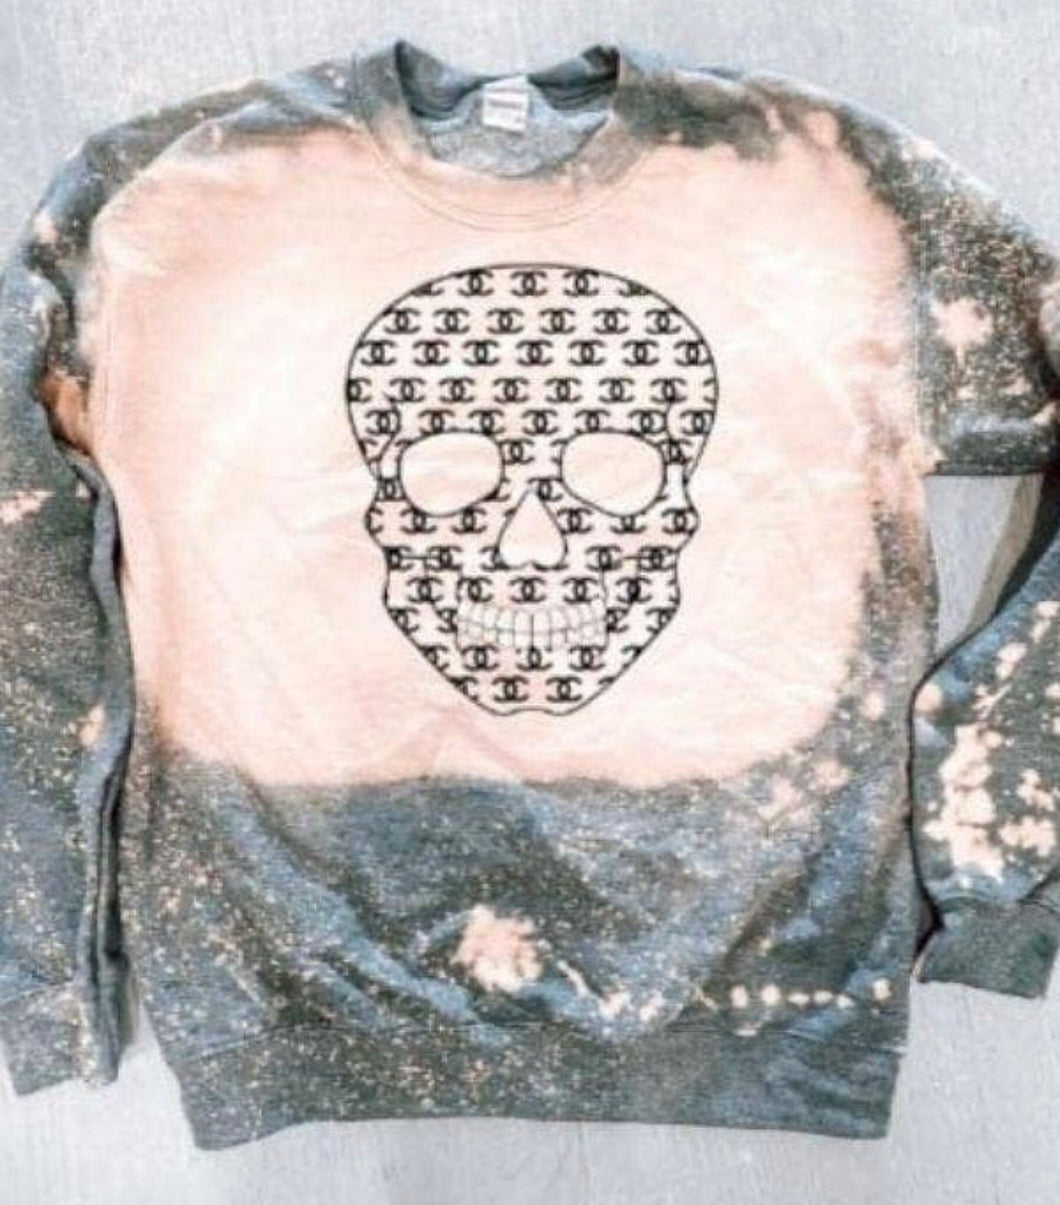 Chanel Skull Sweatshirt with Free Shipping